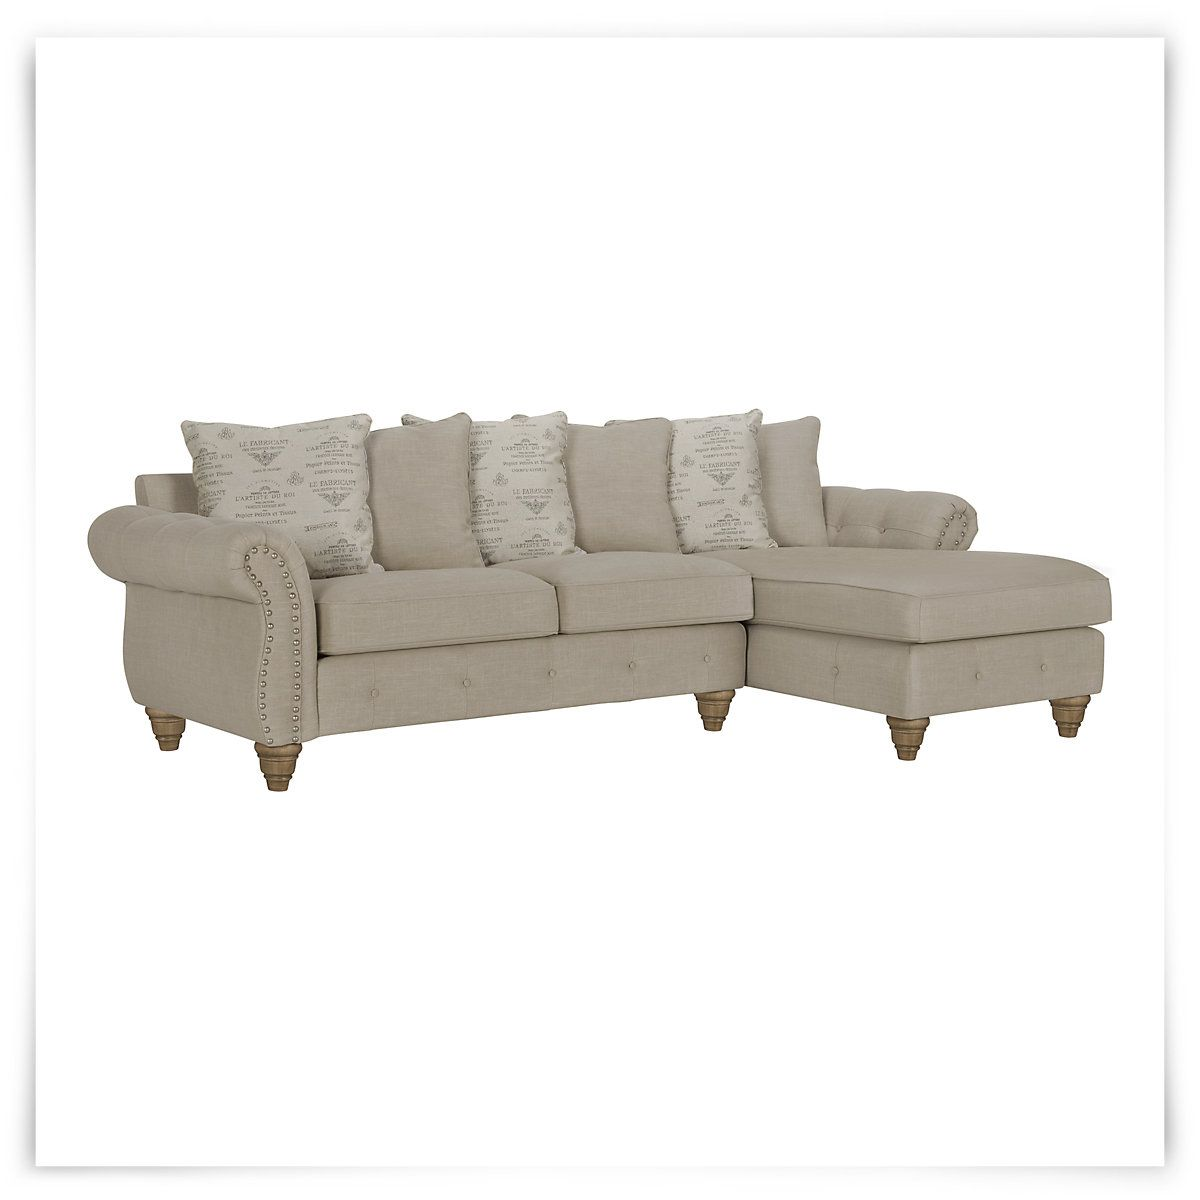 Hutton Lt Taupe Linen Right Chaise Sectional : The colors are blah, and could be easily stained...but its decent and can be dressed up